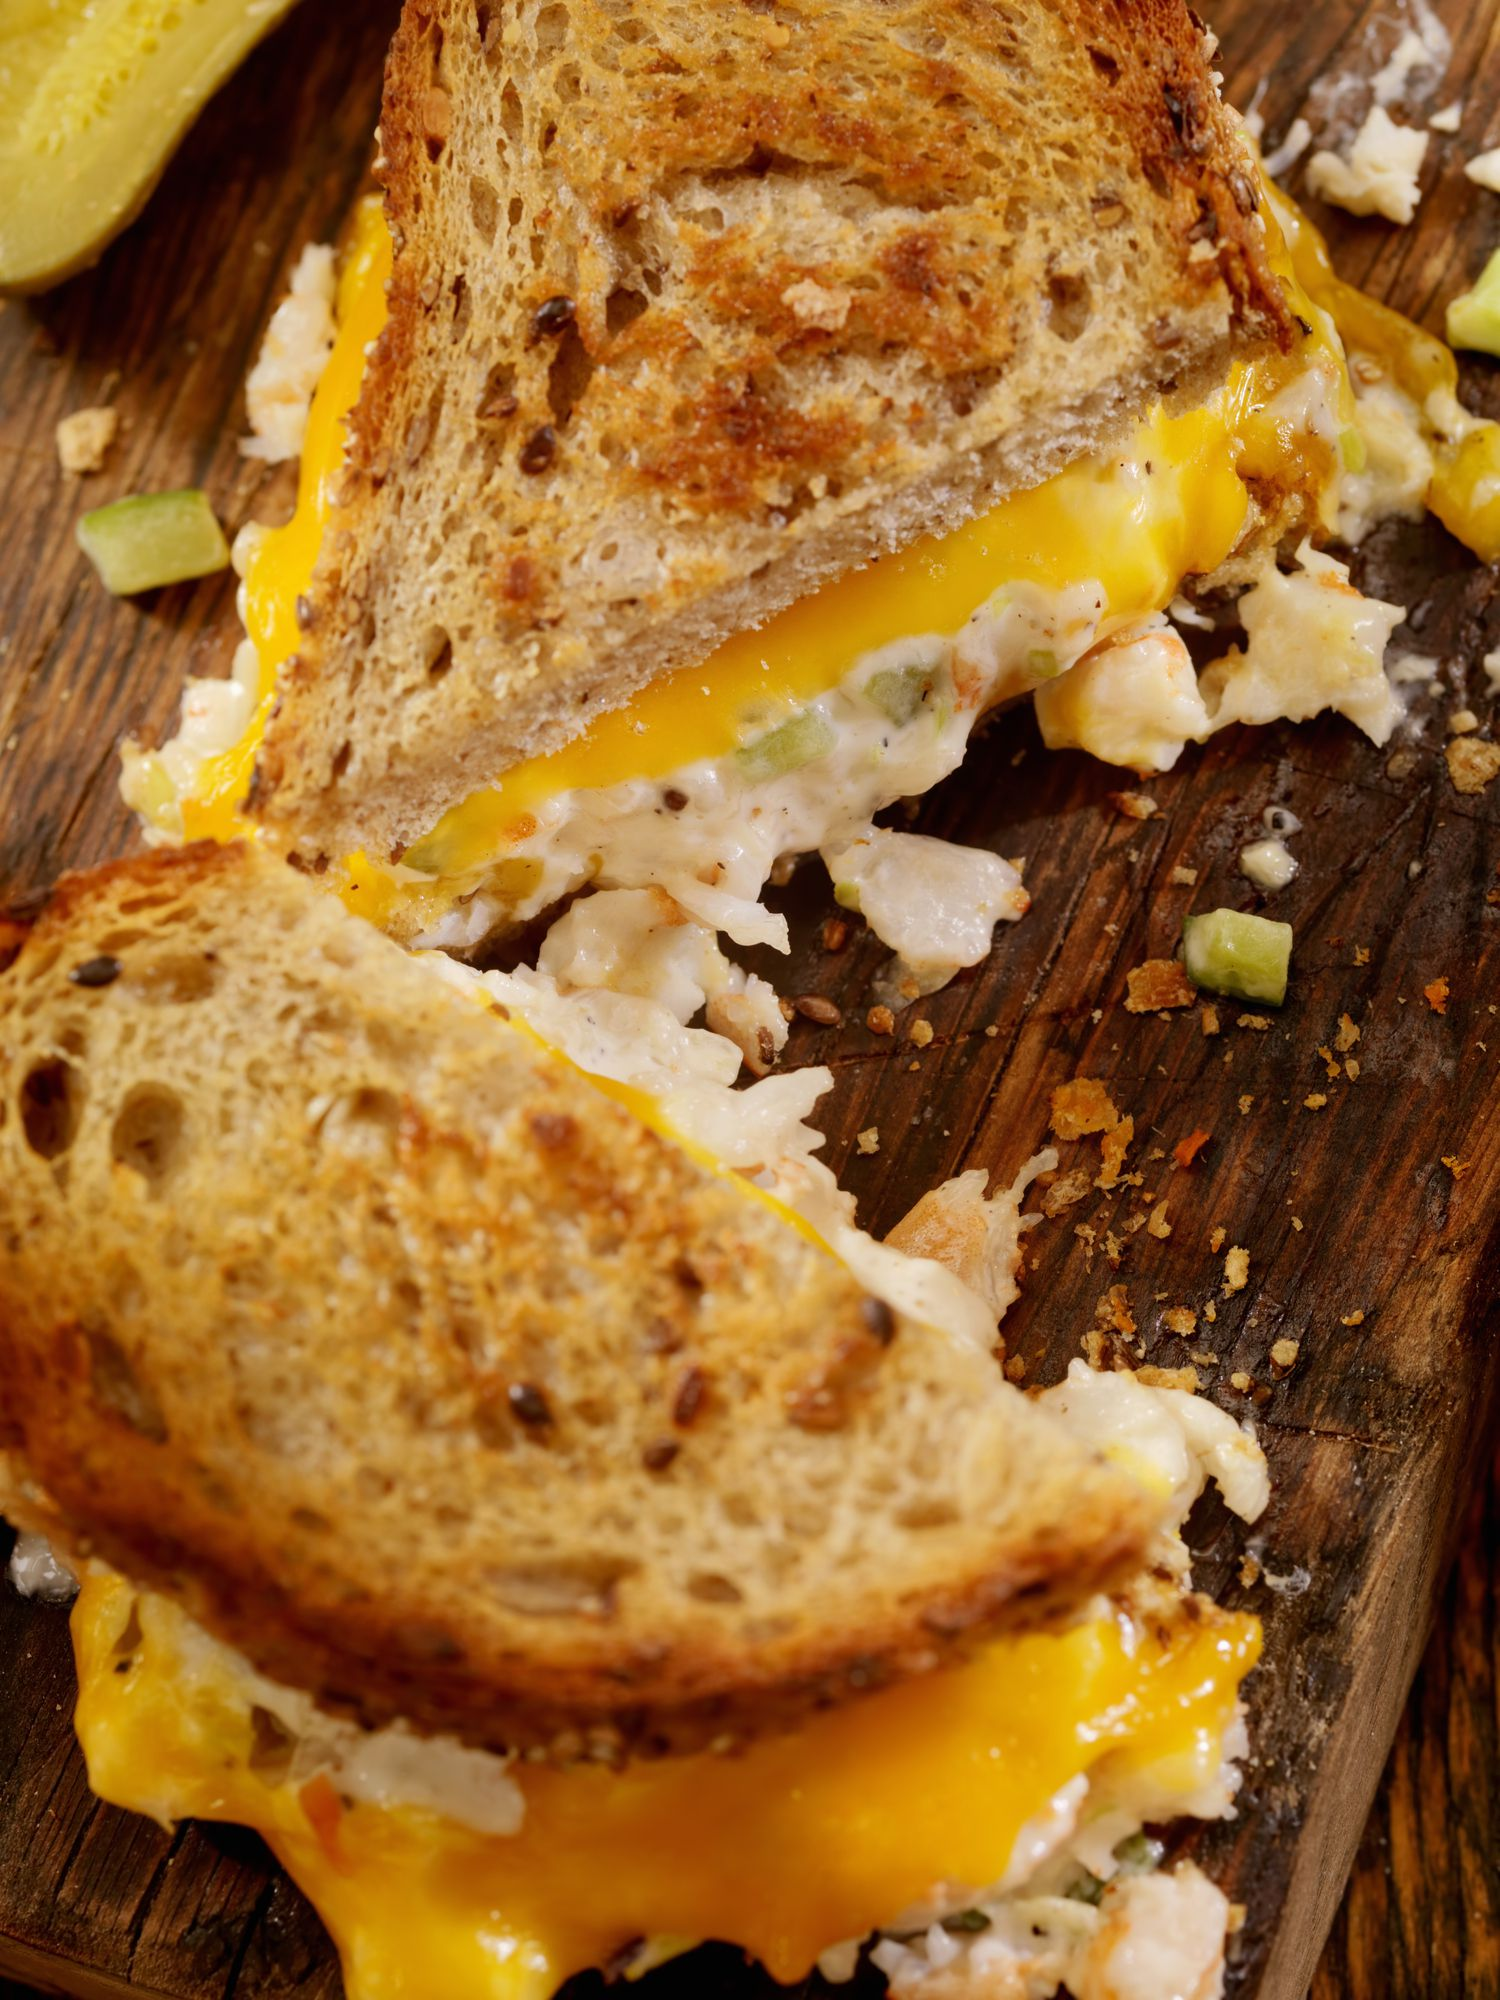 Crab And Shrimp Salad Cheddar Melt Sandwich Recipe